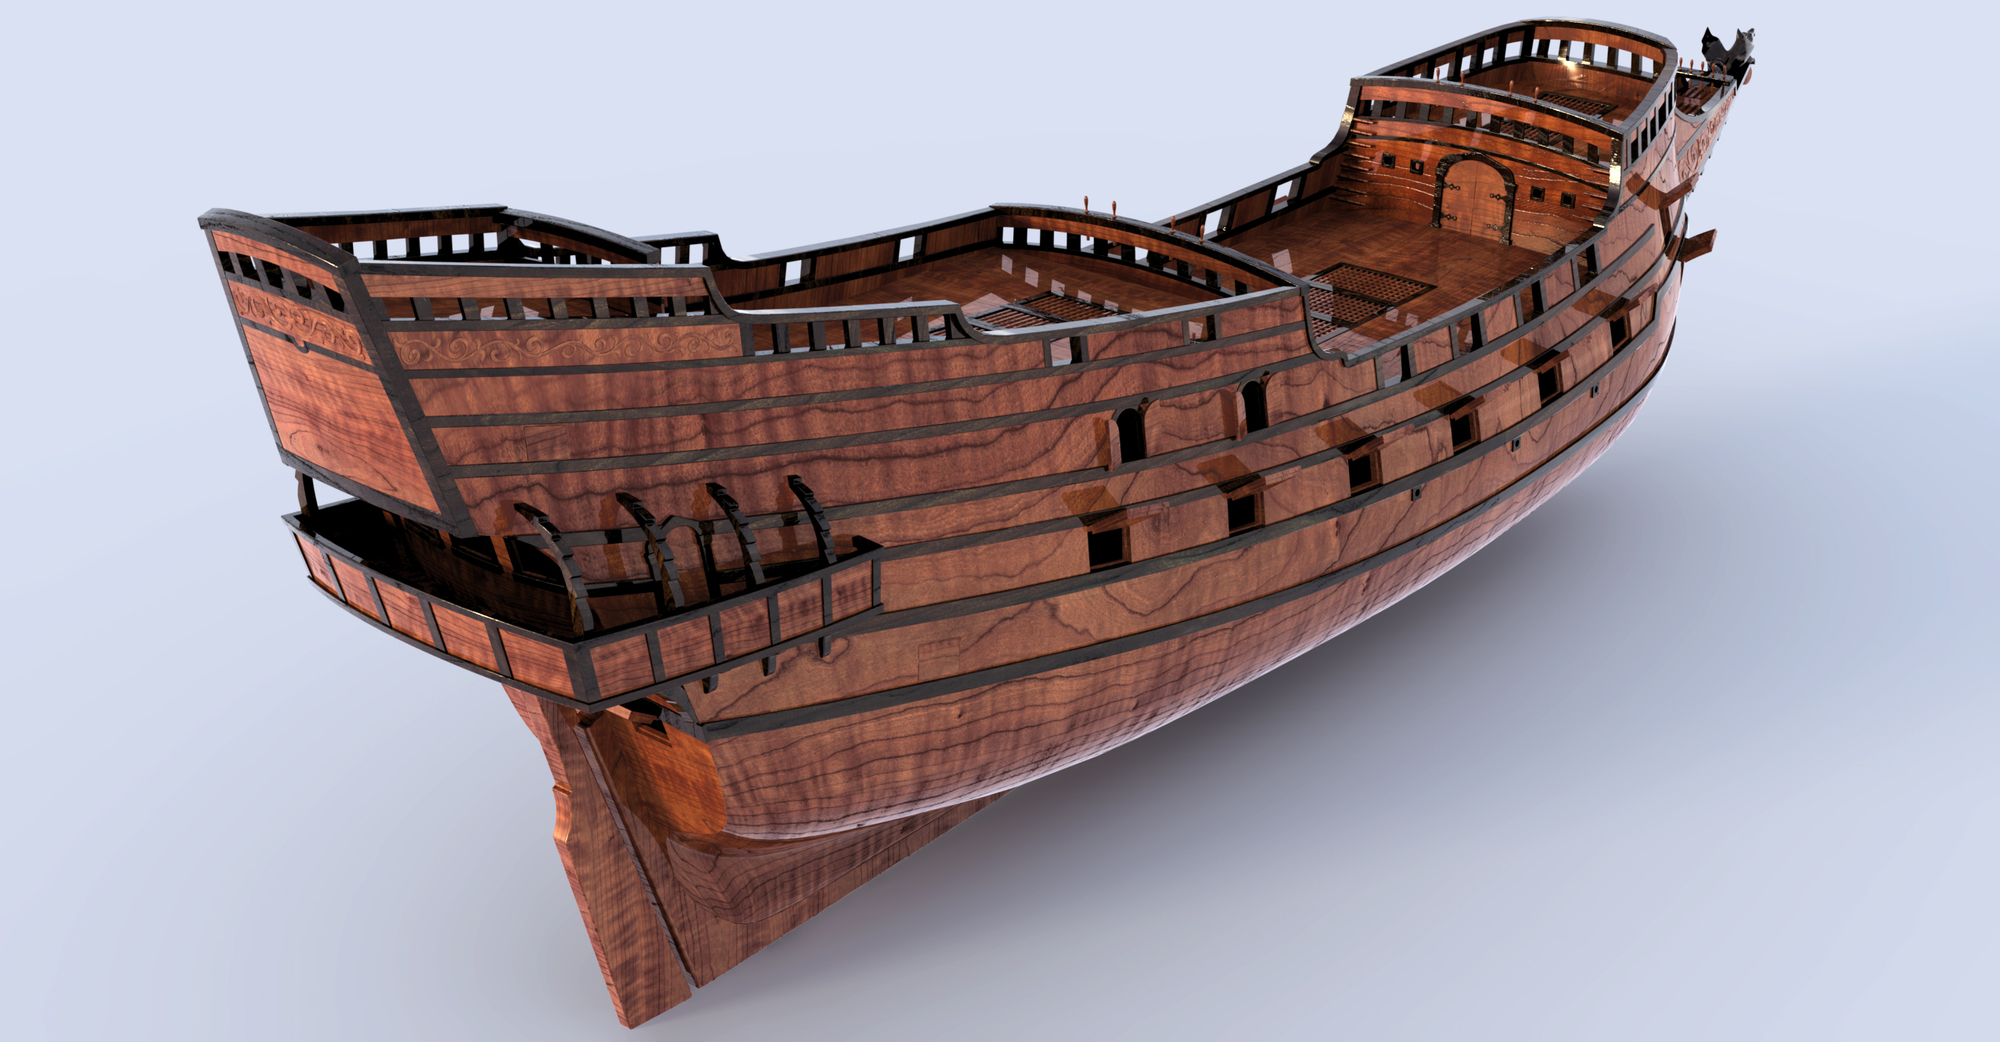 Galleon_rear4